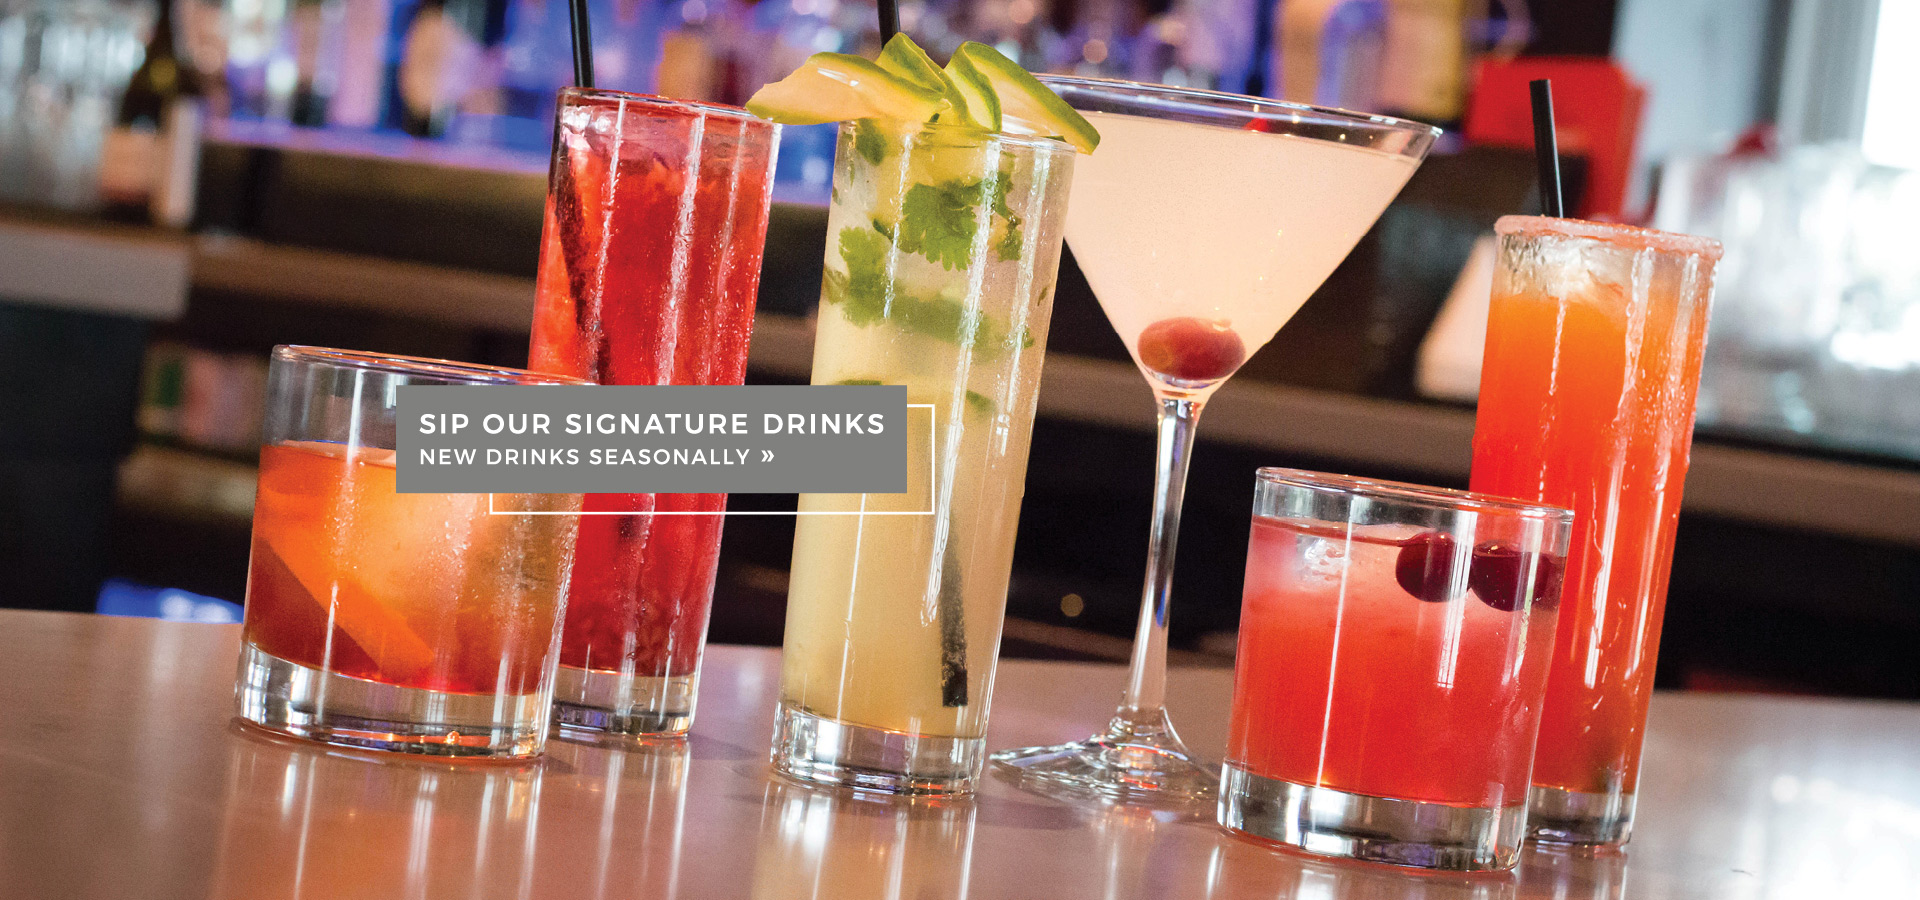 J Bar Signature Drinks